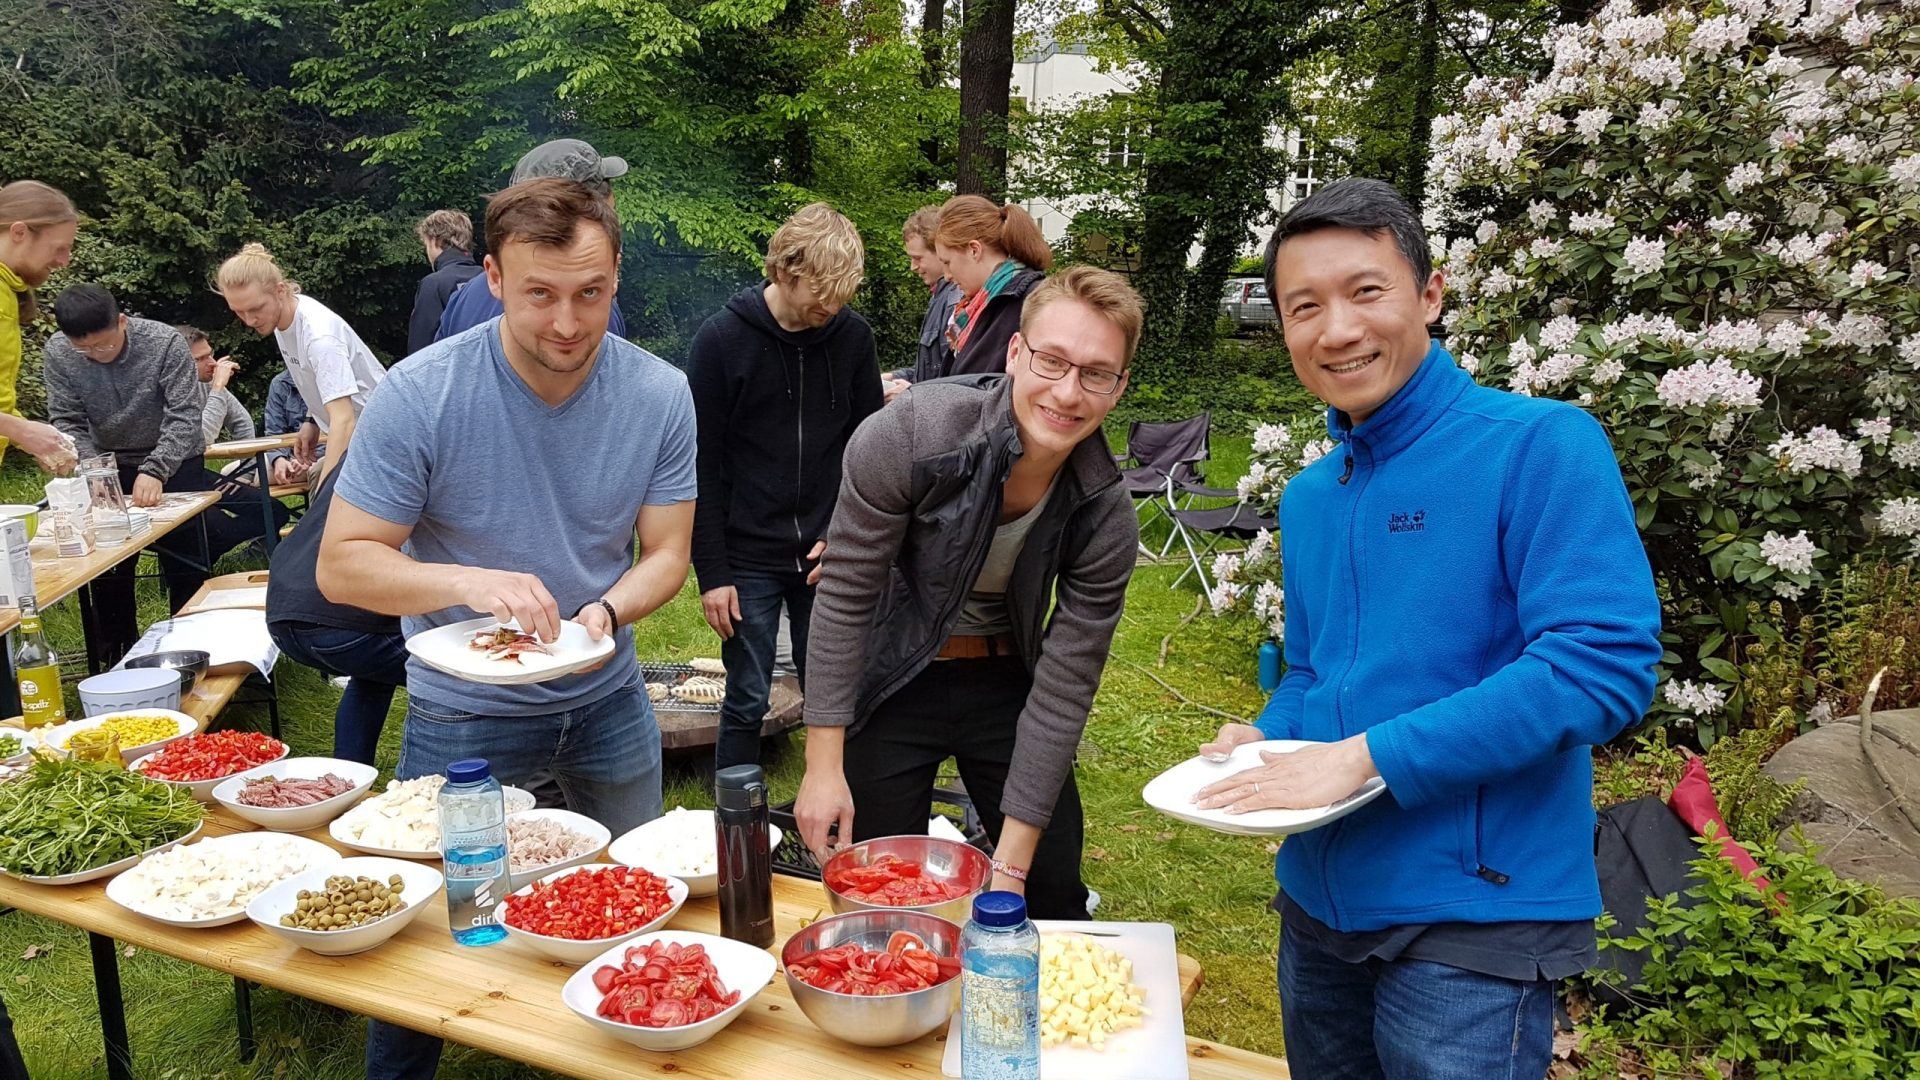 Wandelbots team members on a barbecue